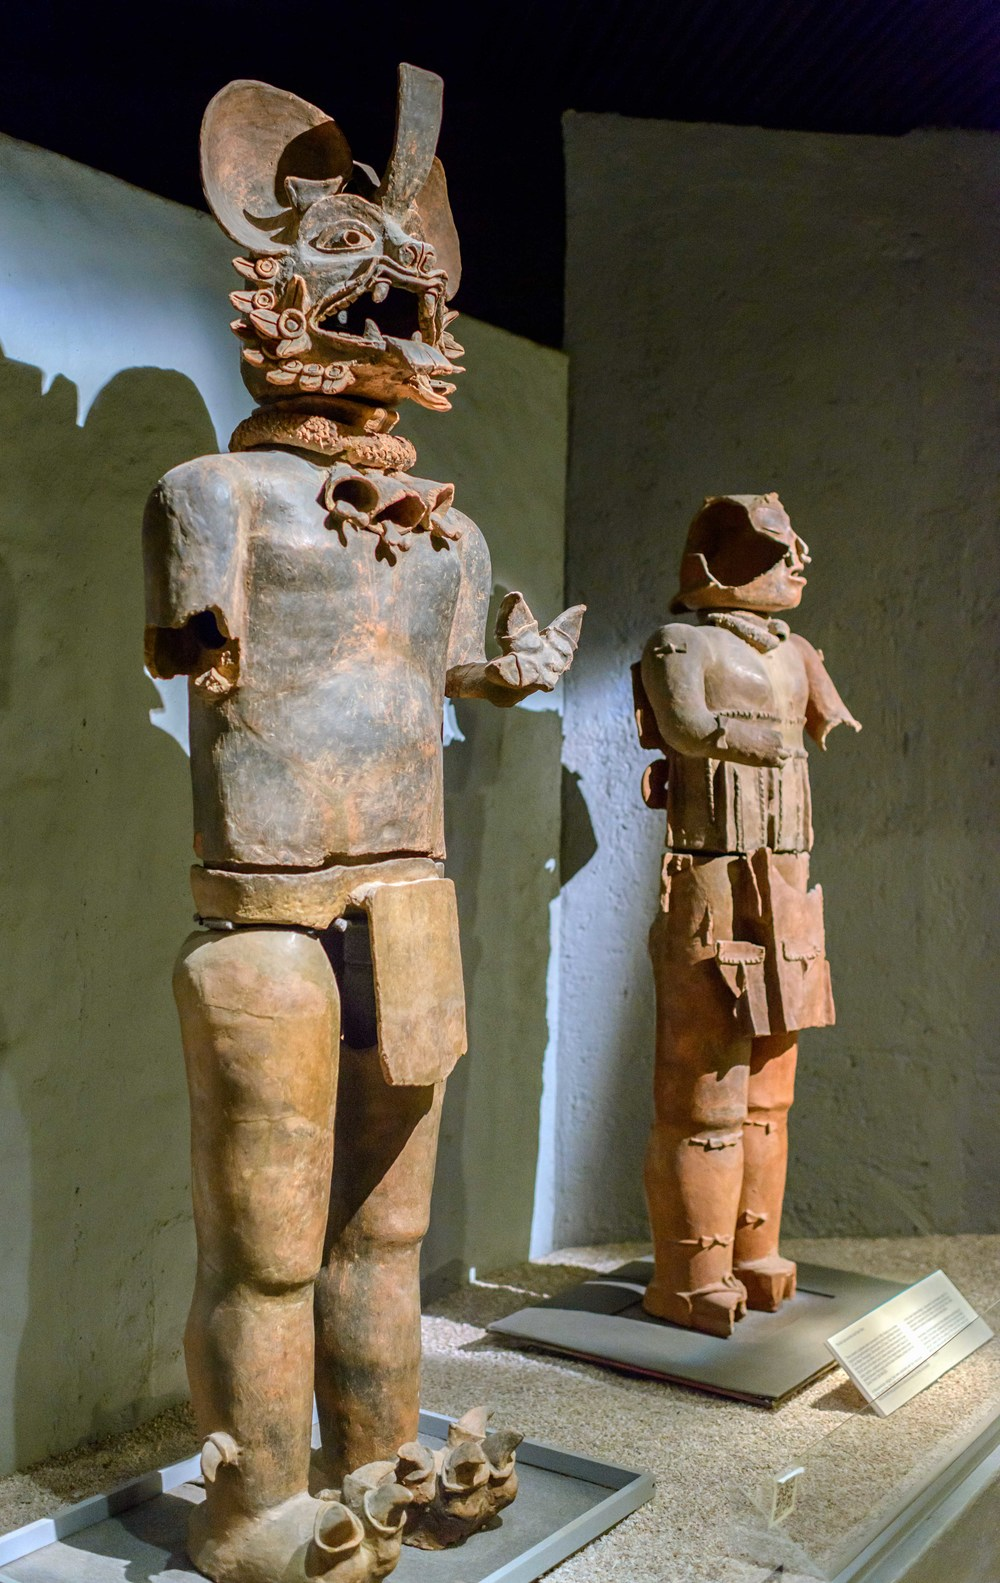 The Bat God and the God Xipe Totec, Templo Mayor Museum, Mexico City.